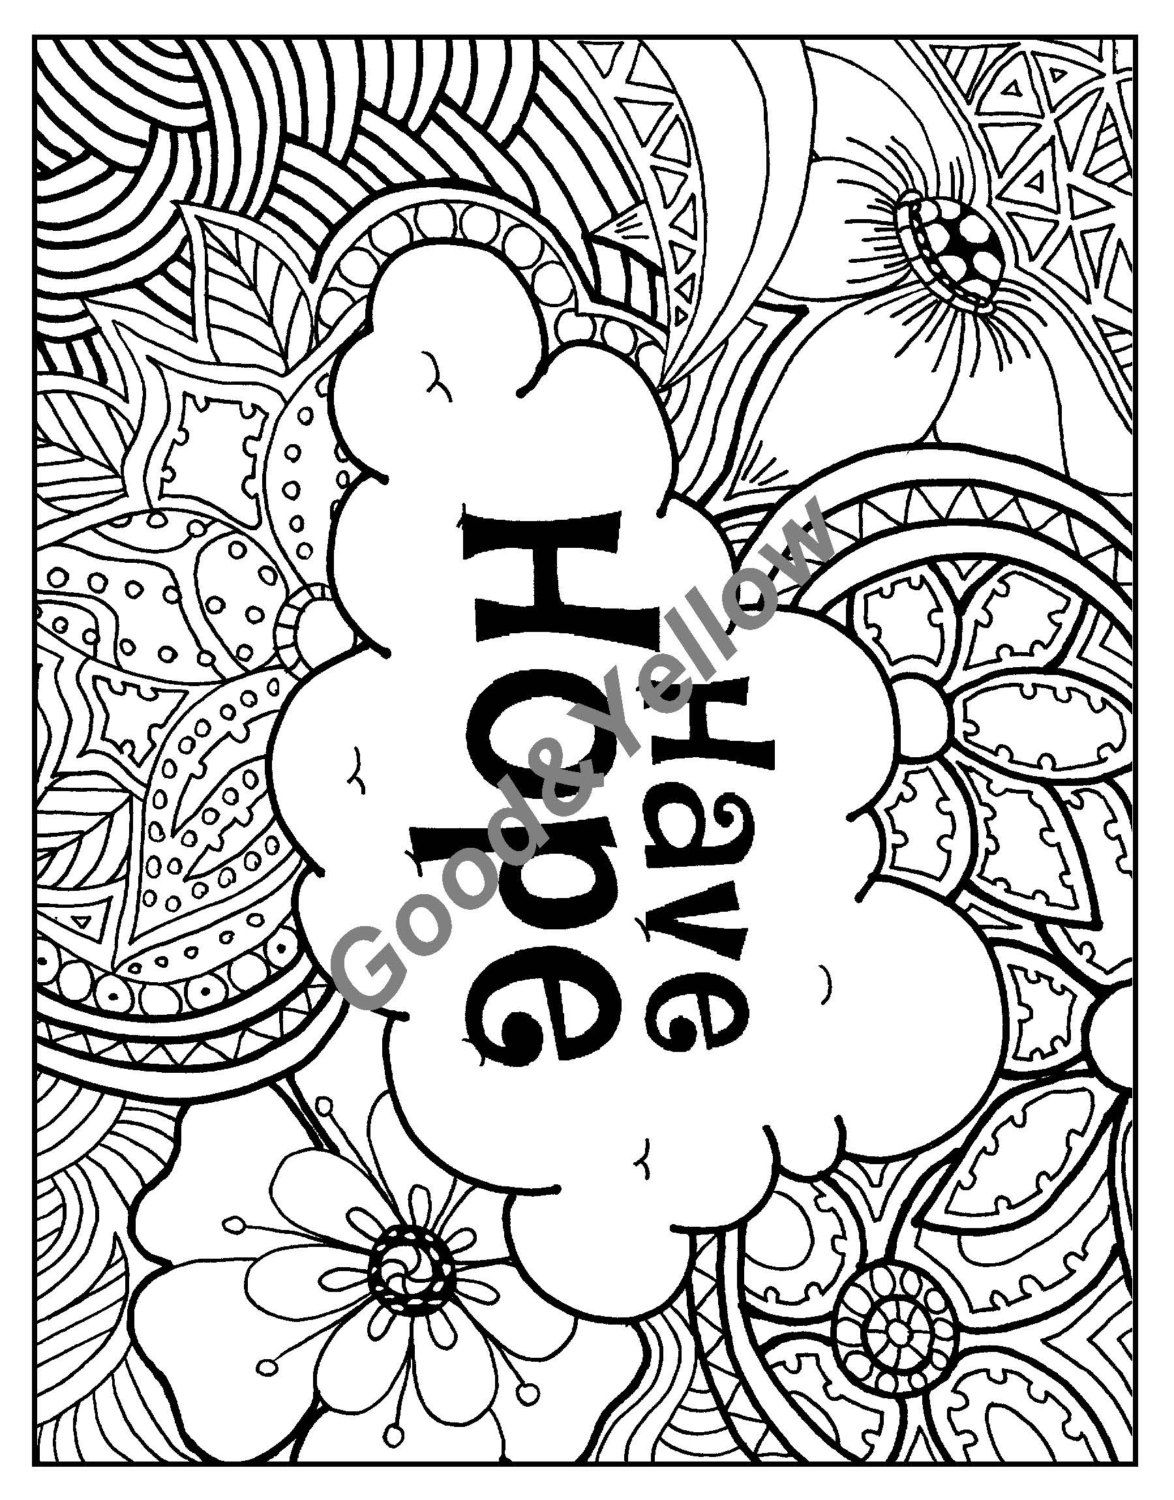 Positive Affirmations Adult Coloring Book By LovableLynzi On Etsy